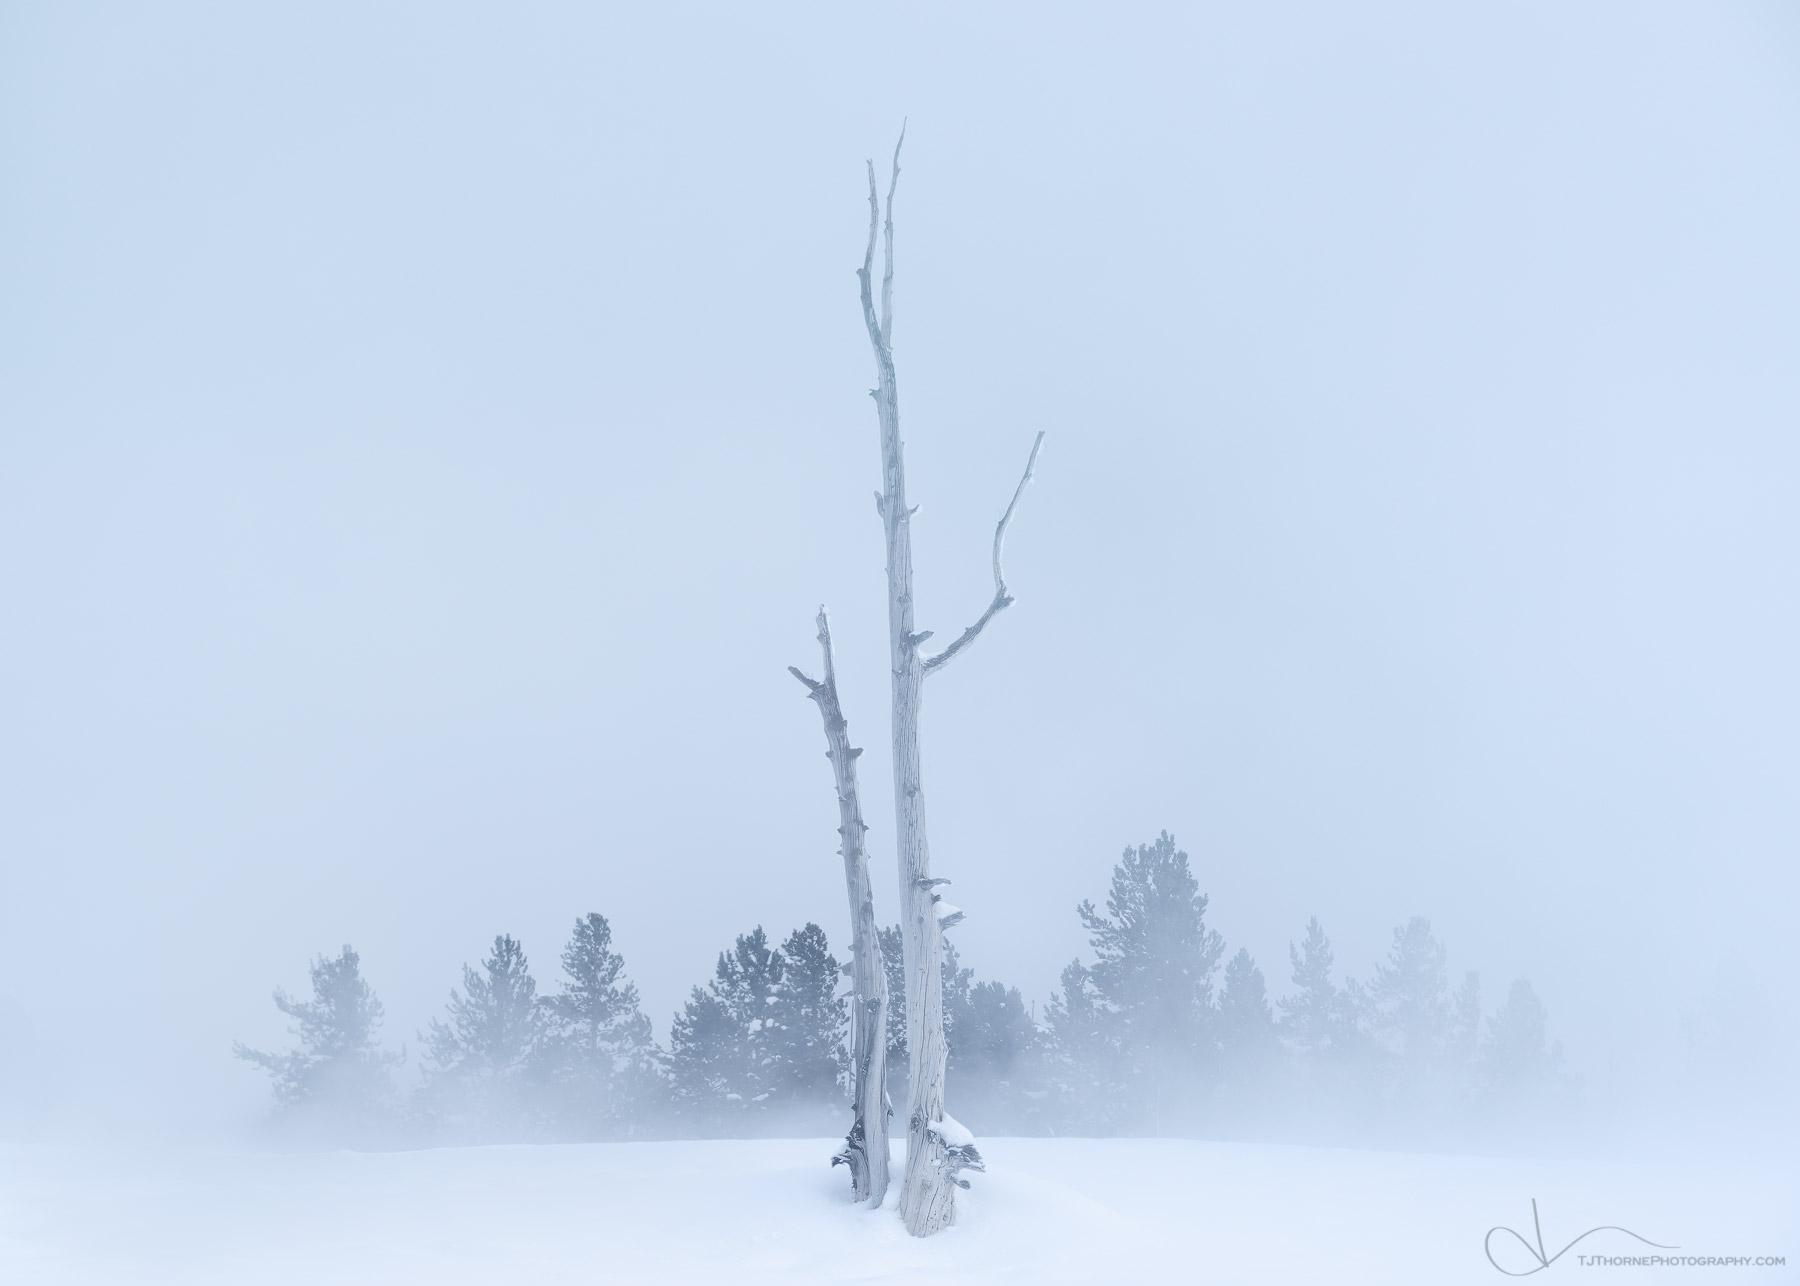 yellowstone, wyoming, trees, snow, steam, winter, geyser, photo